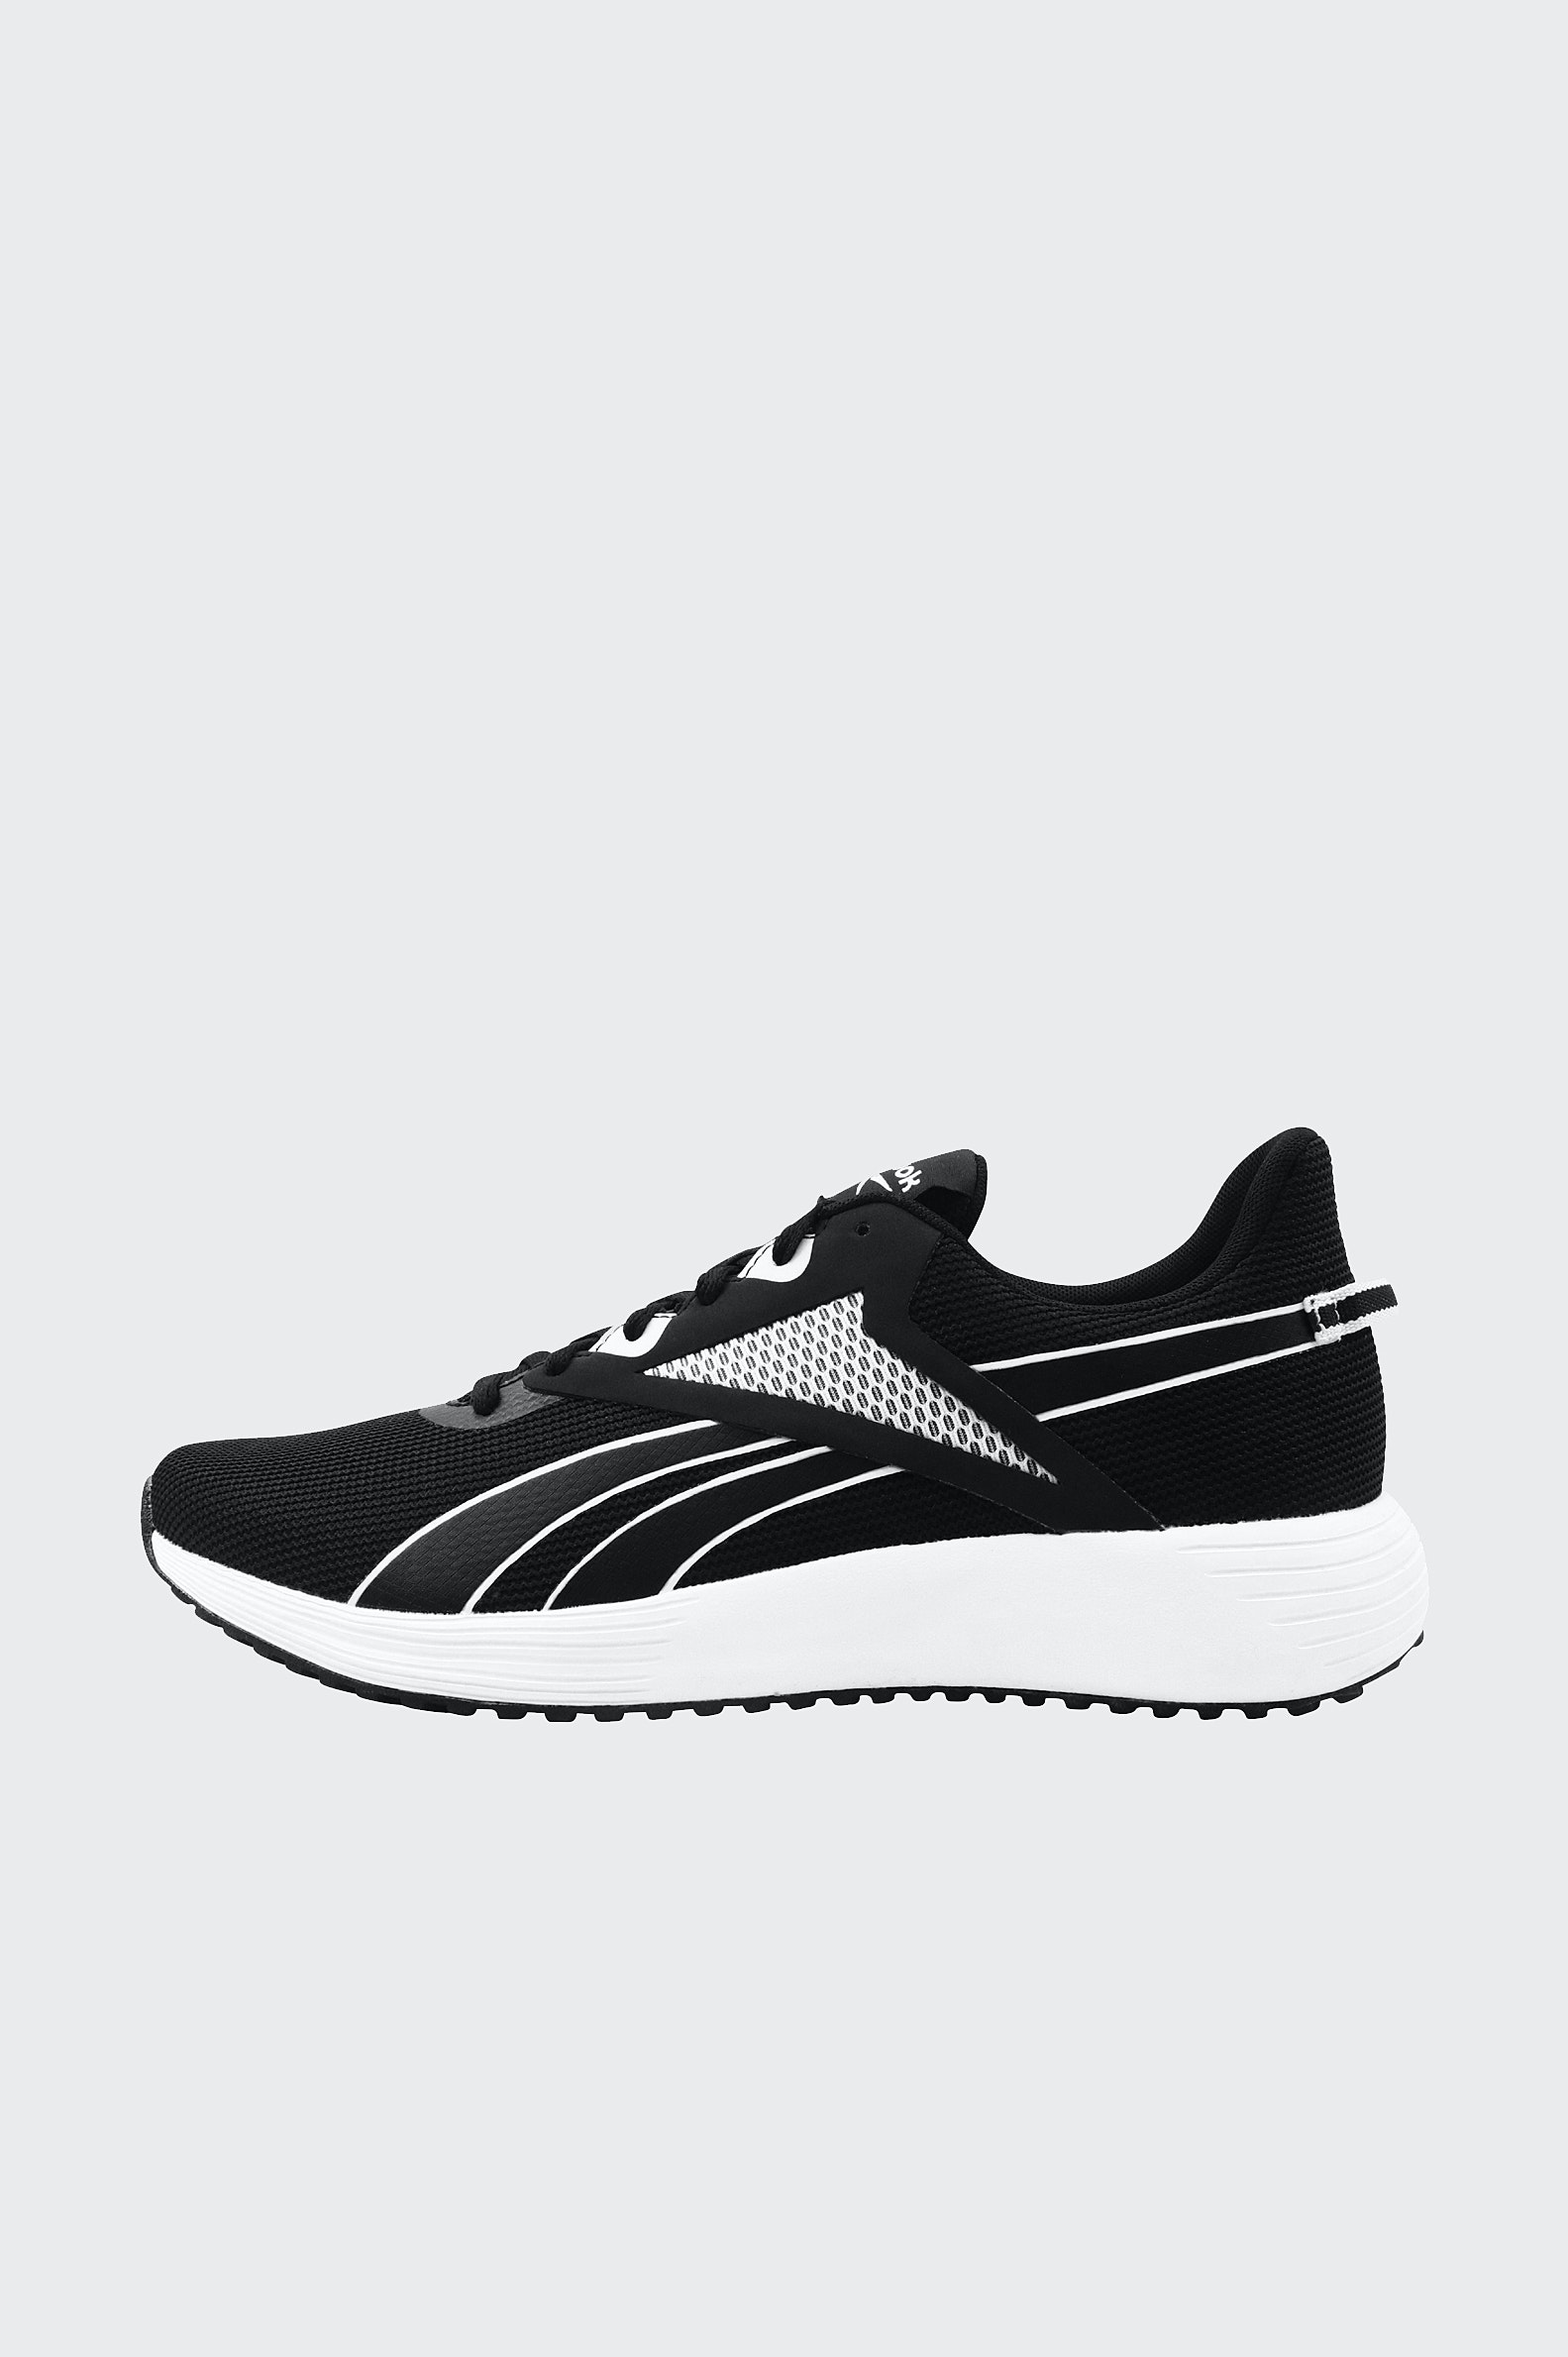 CHAUSSURES MODE REEBOK  HOMME